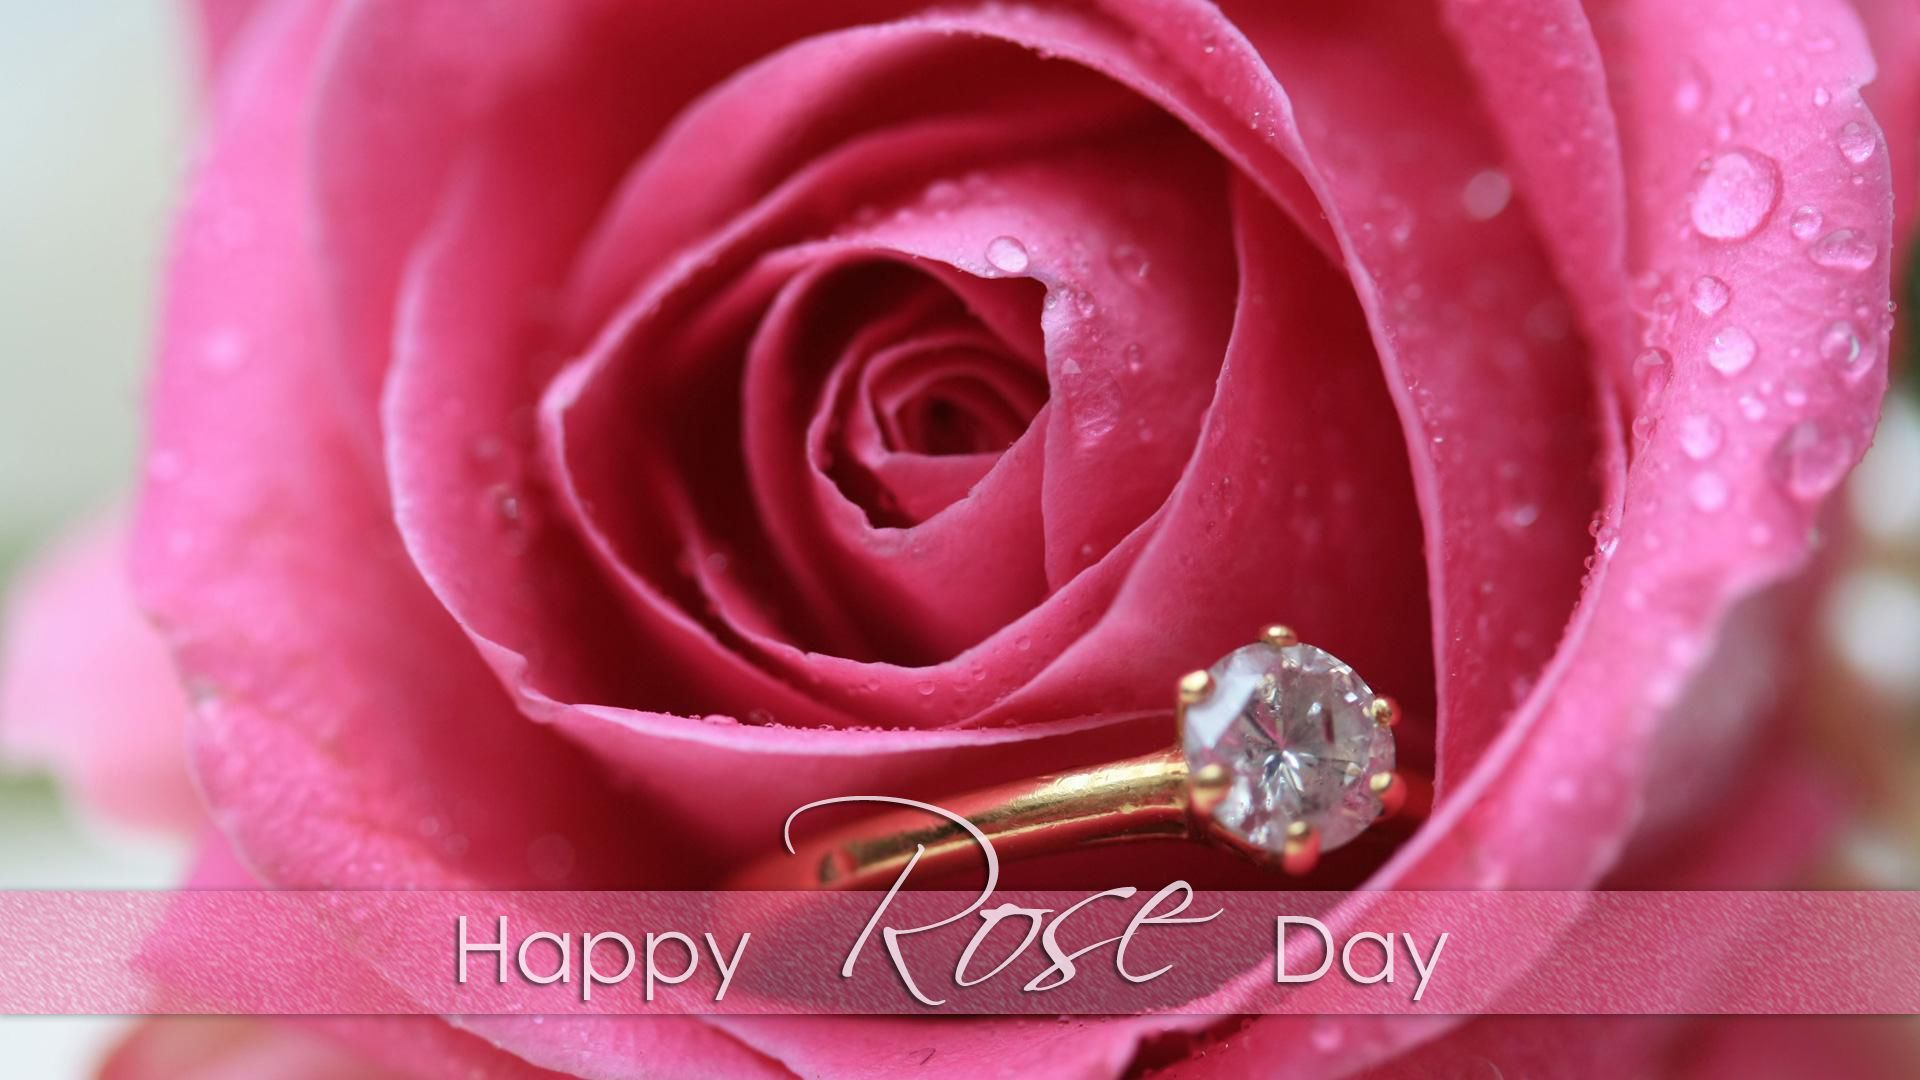 Top 30 rose day whatsapp status and facebook messages rose day top 30 rose day whatsapp status and facebook messages rose day is celebrated buycottarizona